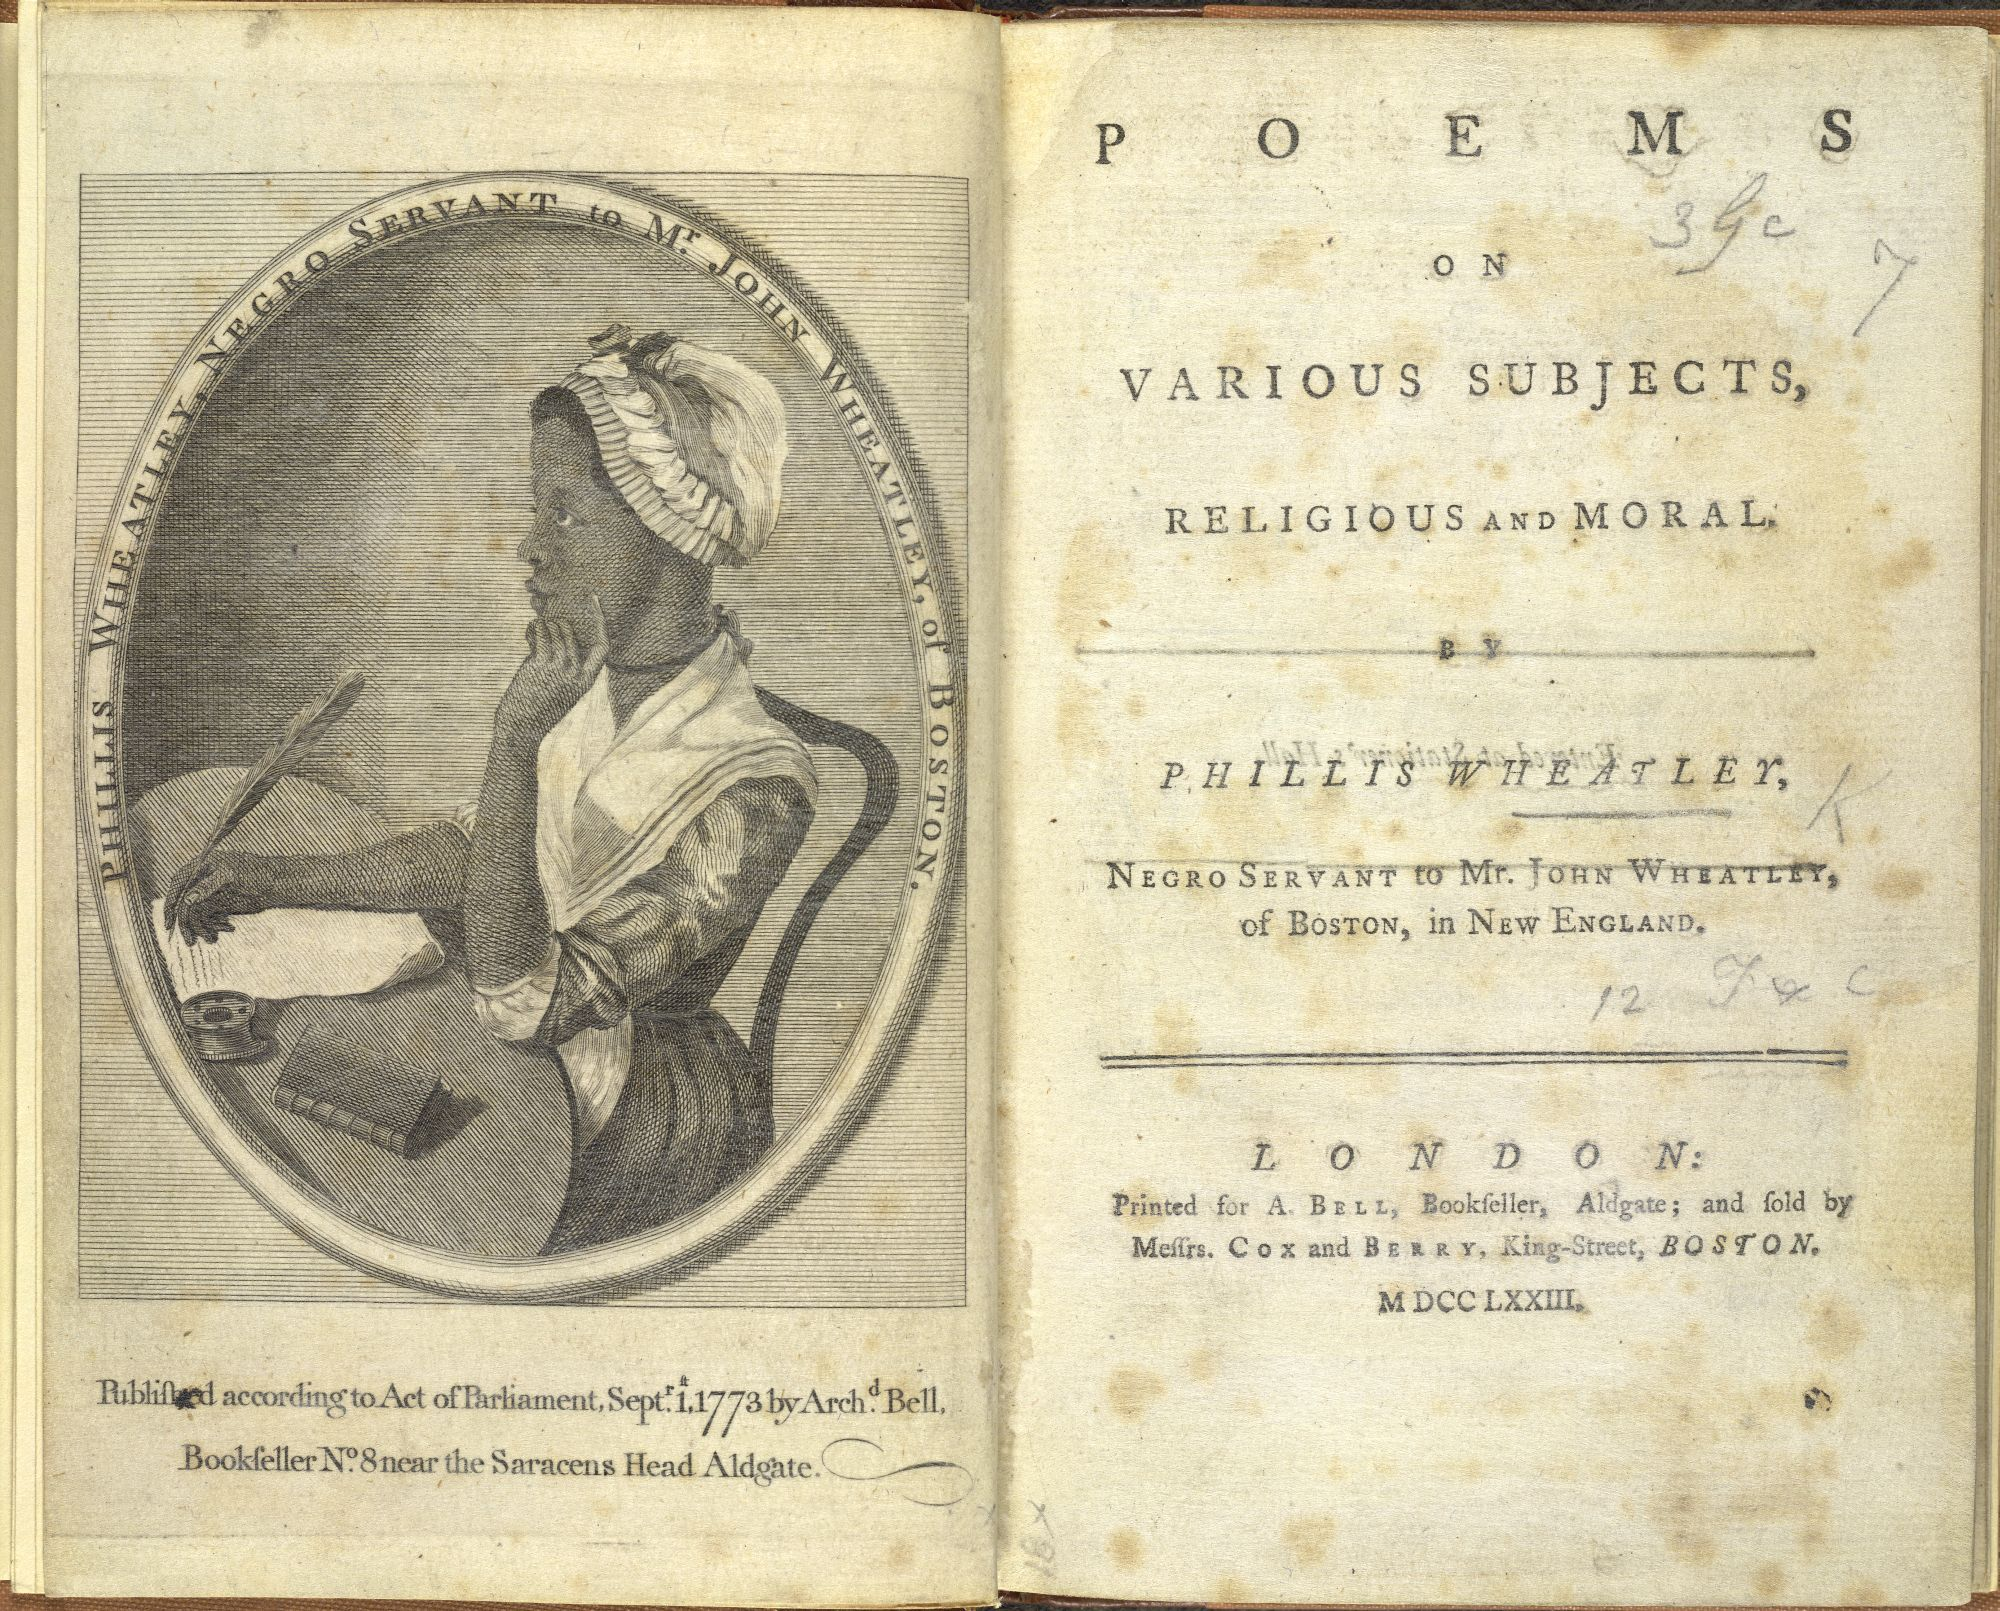 Phillis Wheatley The First Published African American Female Poet